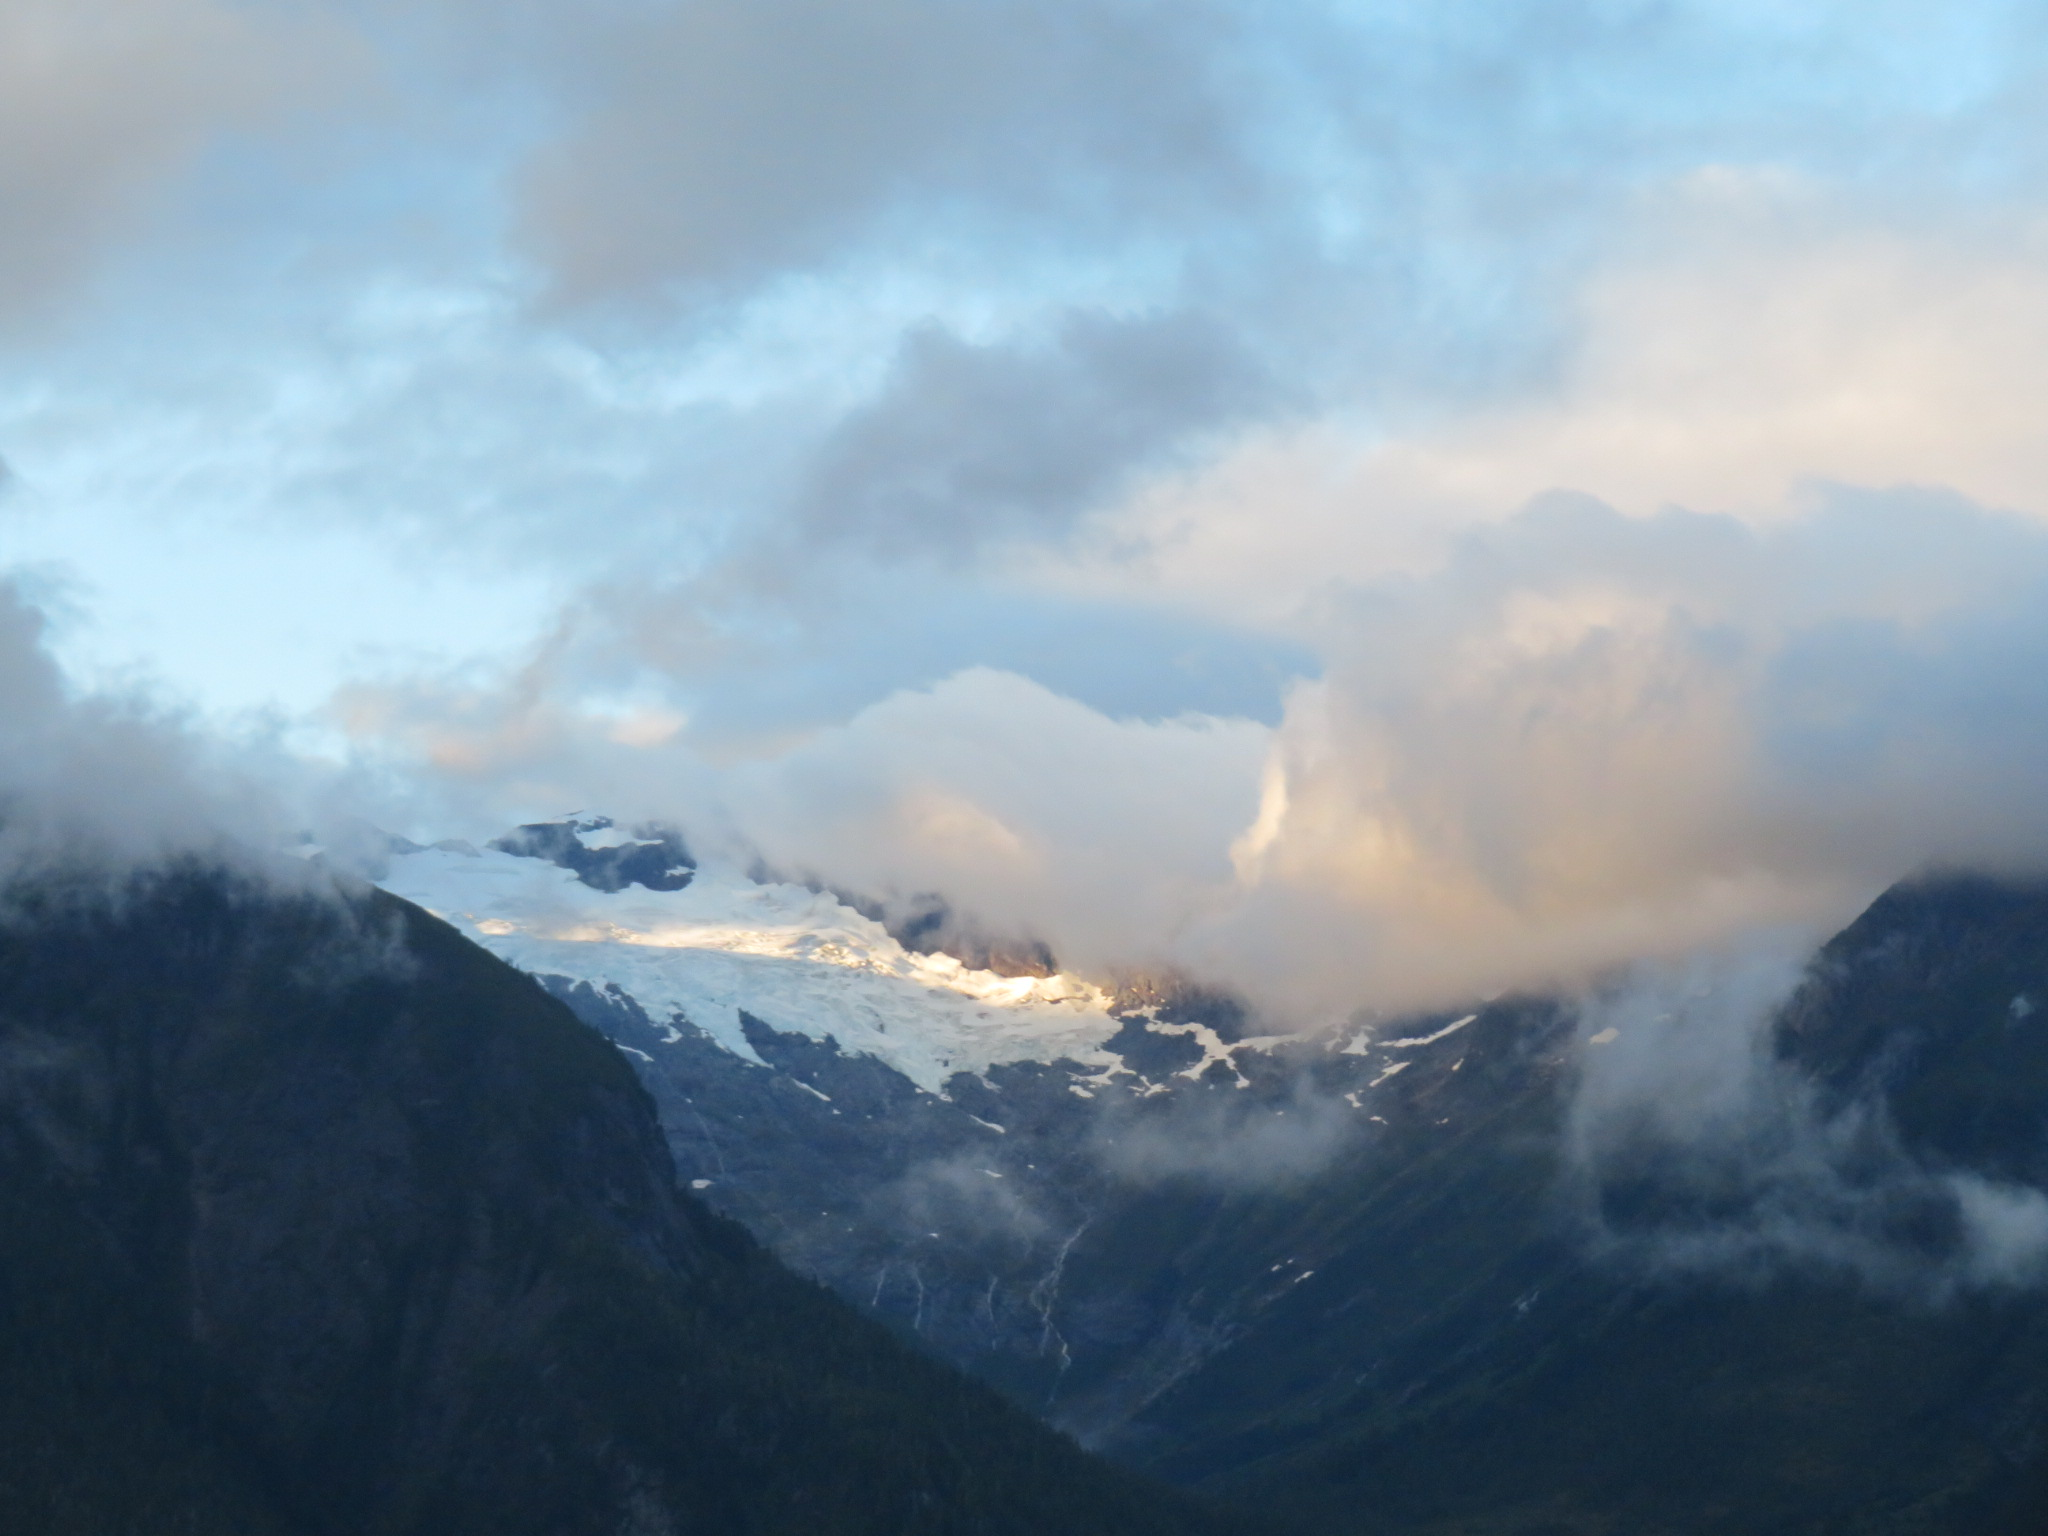 From the ocean floor to ta world of snow and clouds, the coastal range is magical